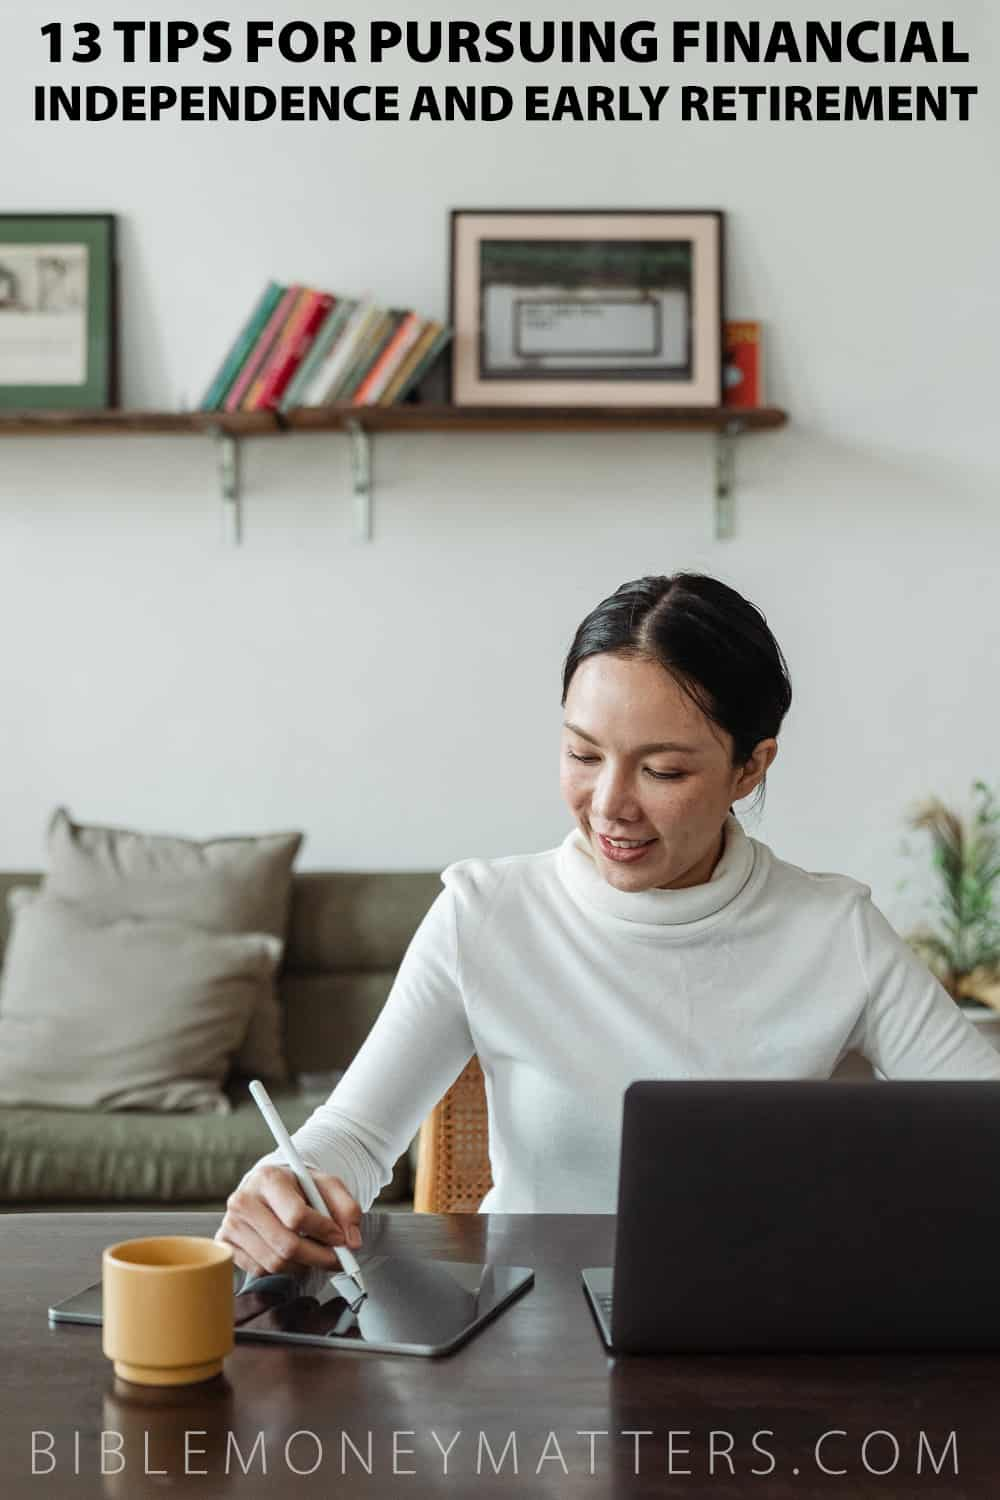 13 Tips For Pursuing Financial Independence And Early Retirement